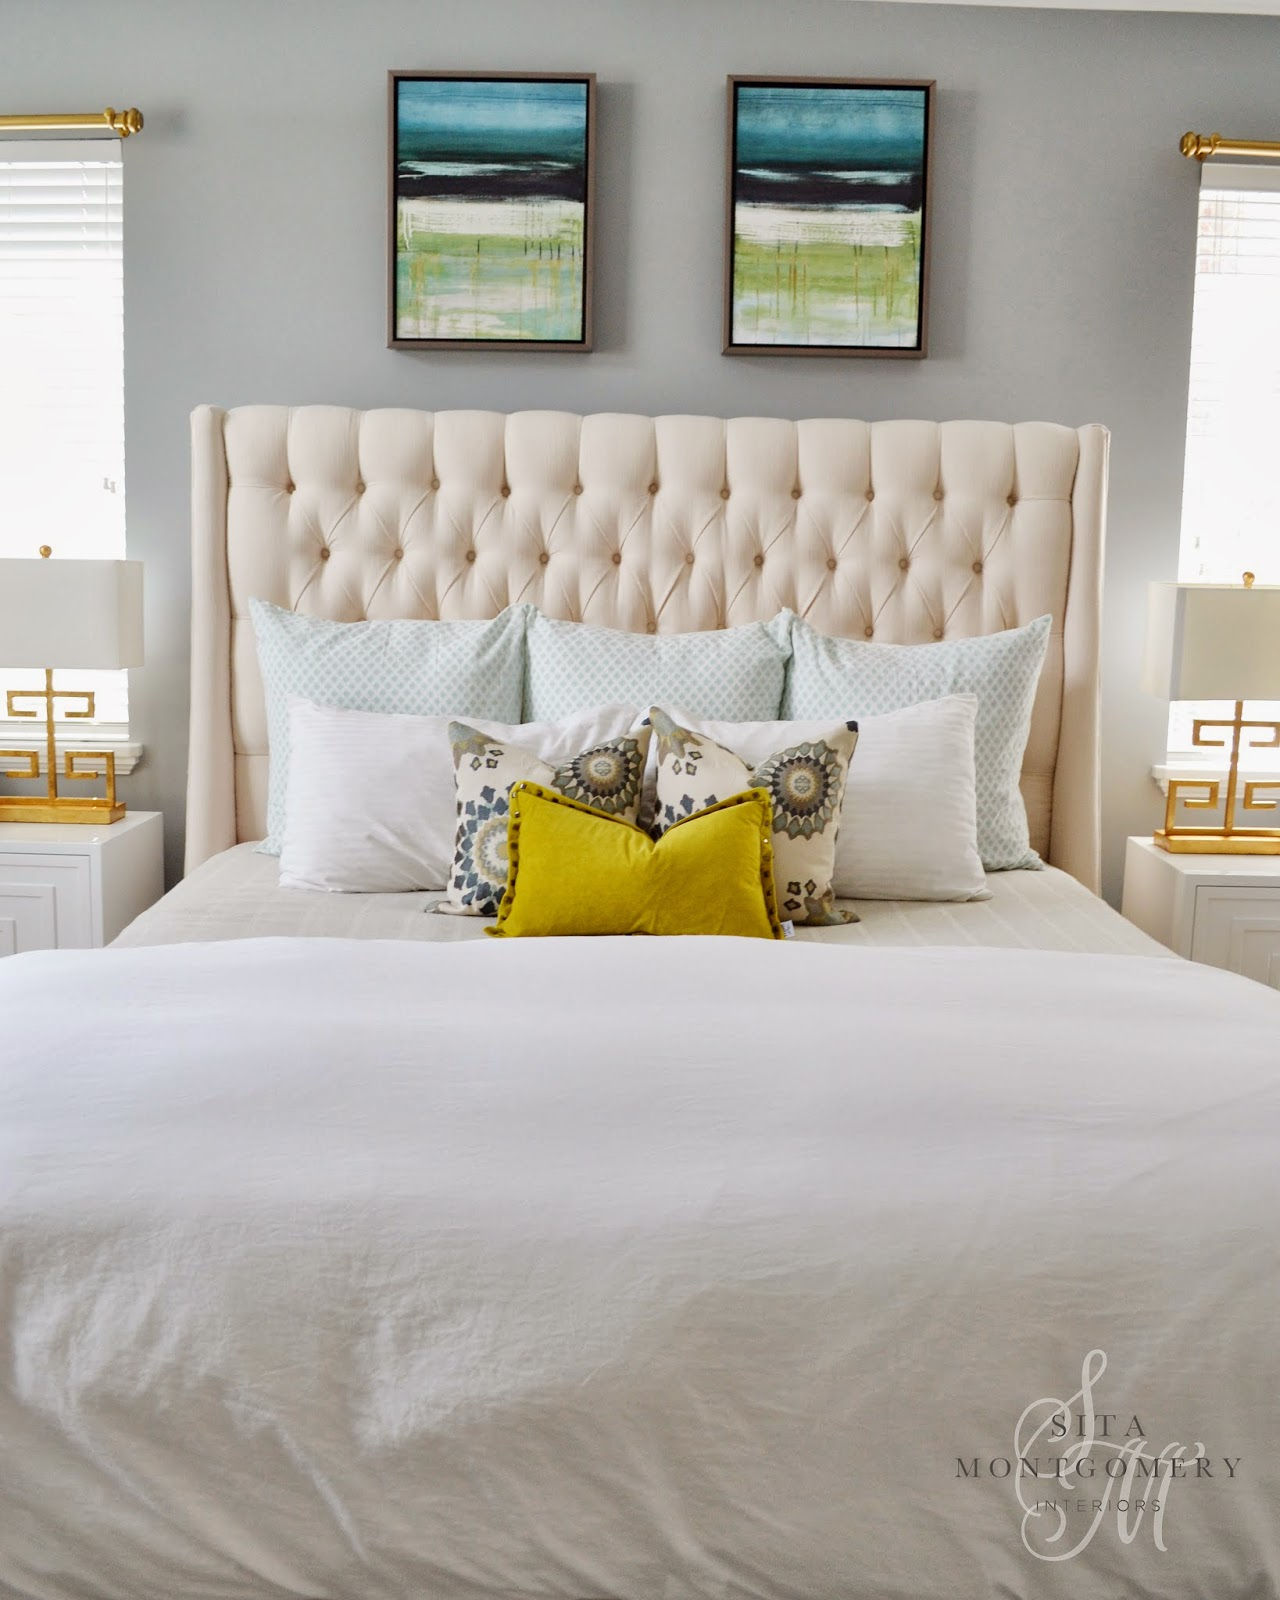 Sita montgomery interiors local client project reveal for B q design your own bedroom